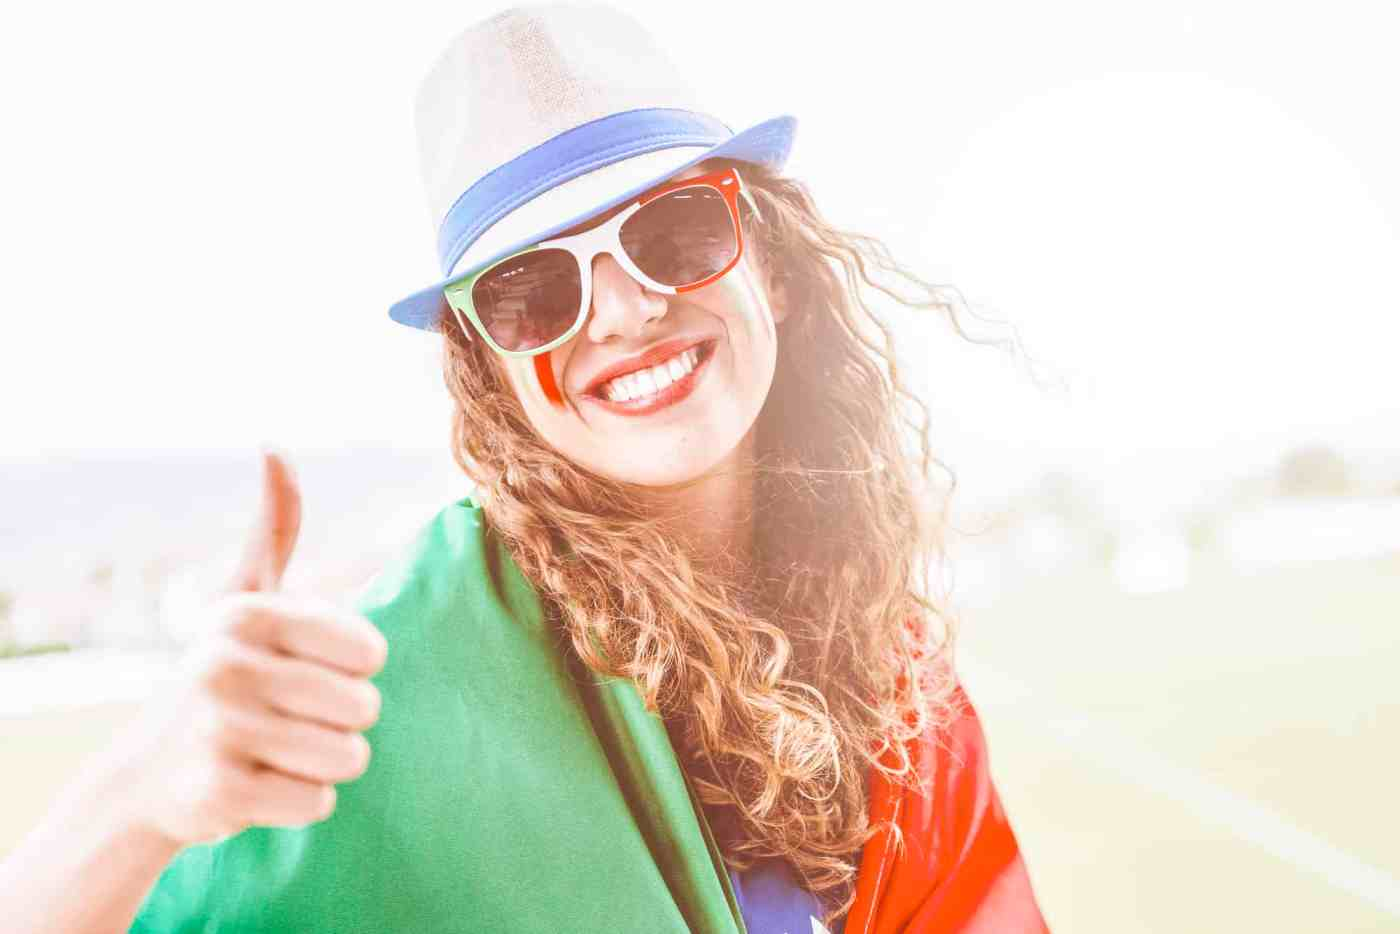 Female Supporter from italy at Stadium